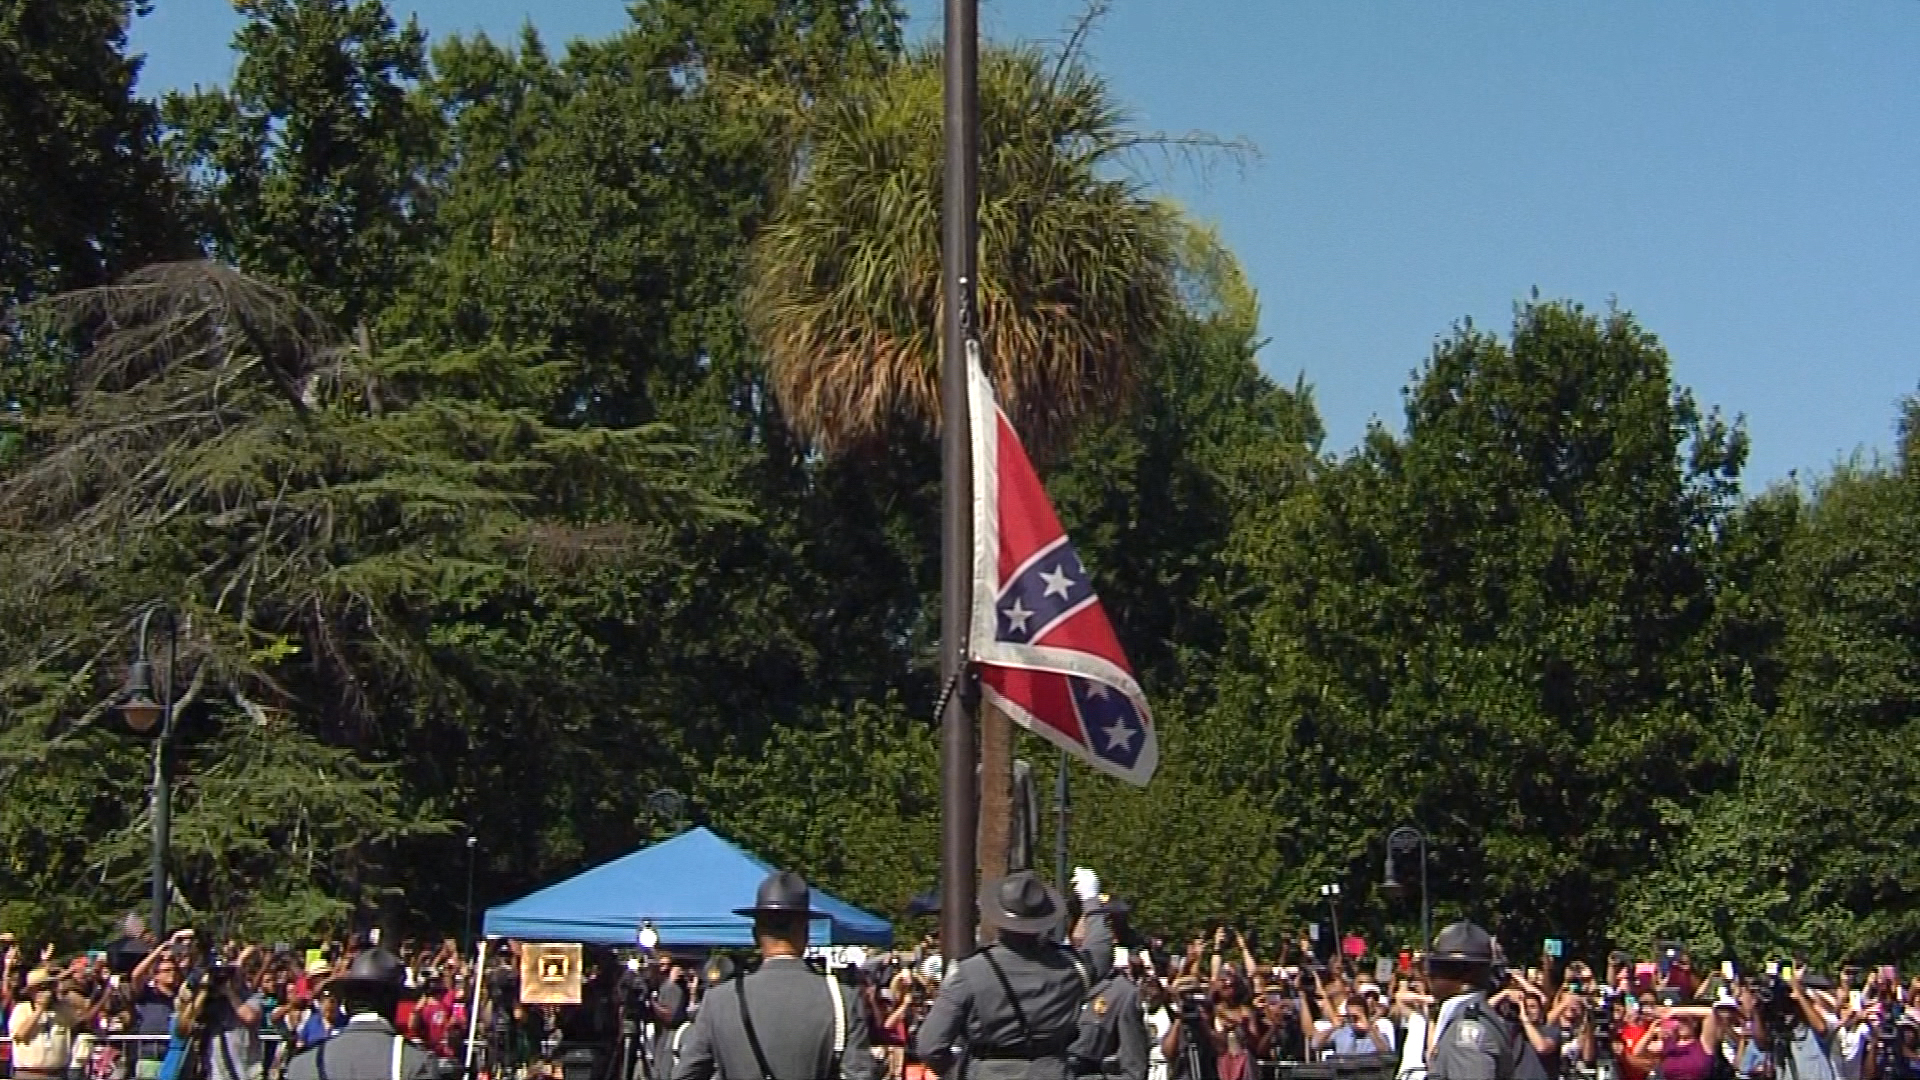 Confed. flag removal 'a story about action'